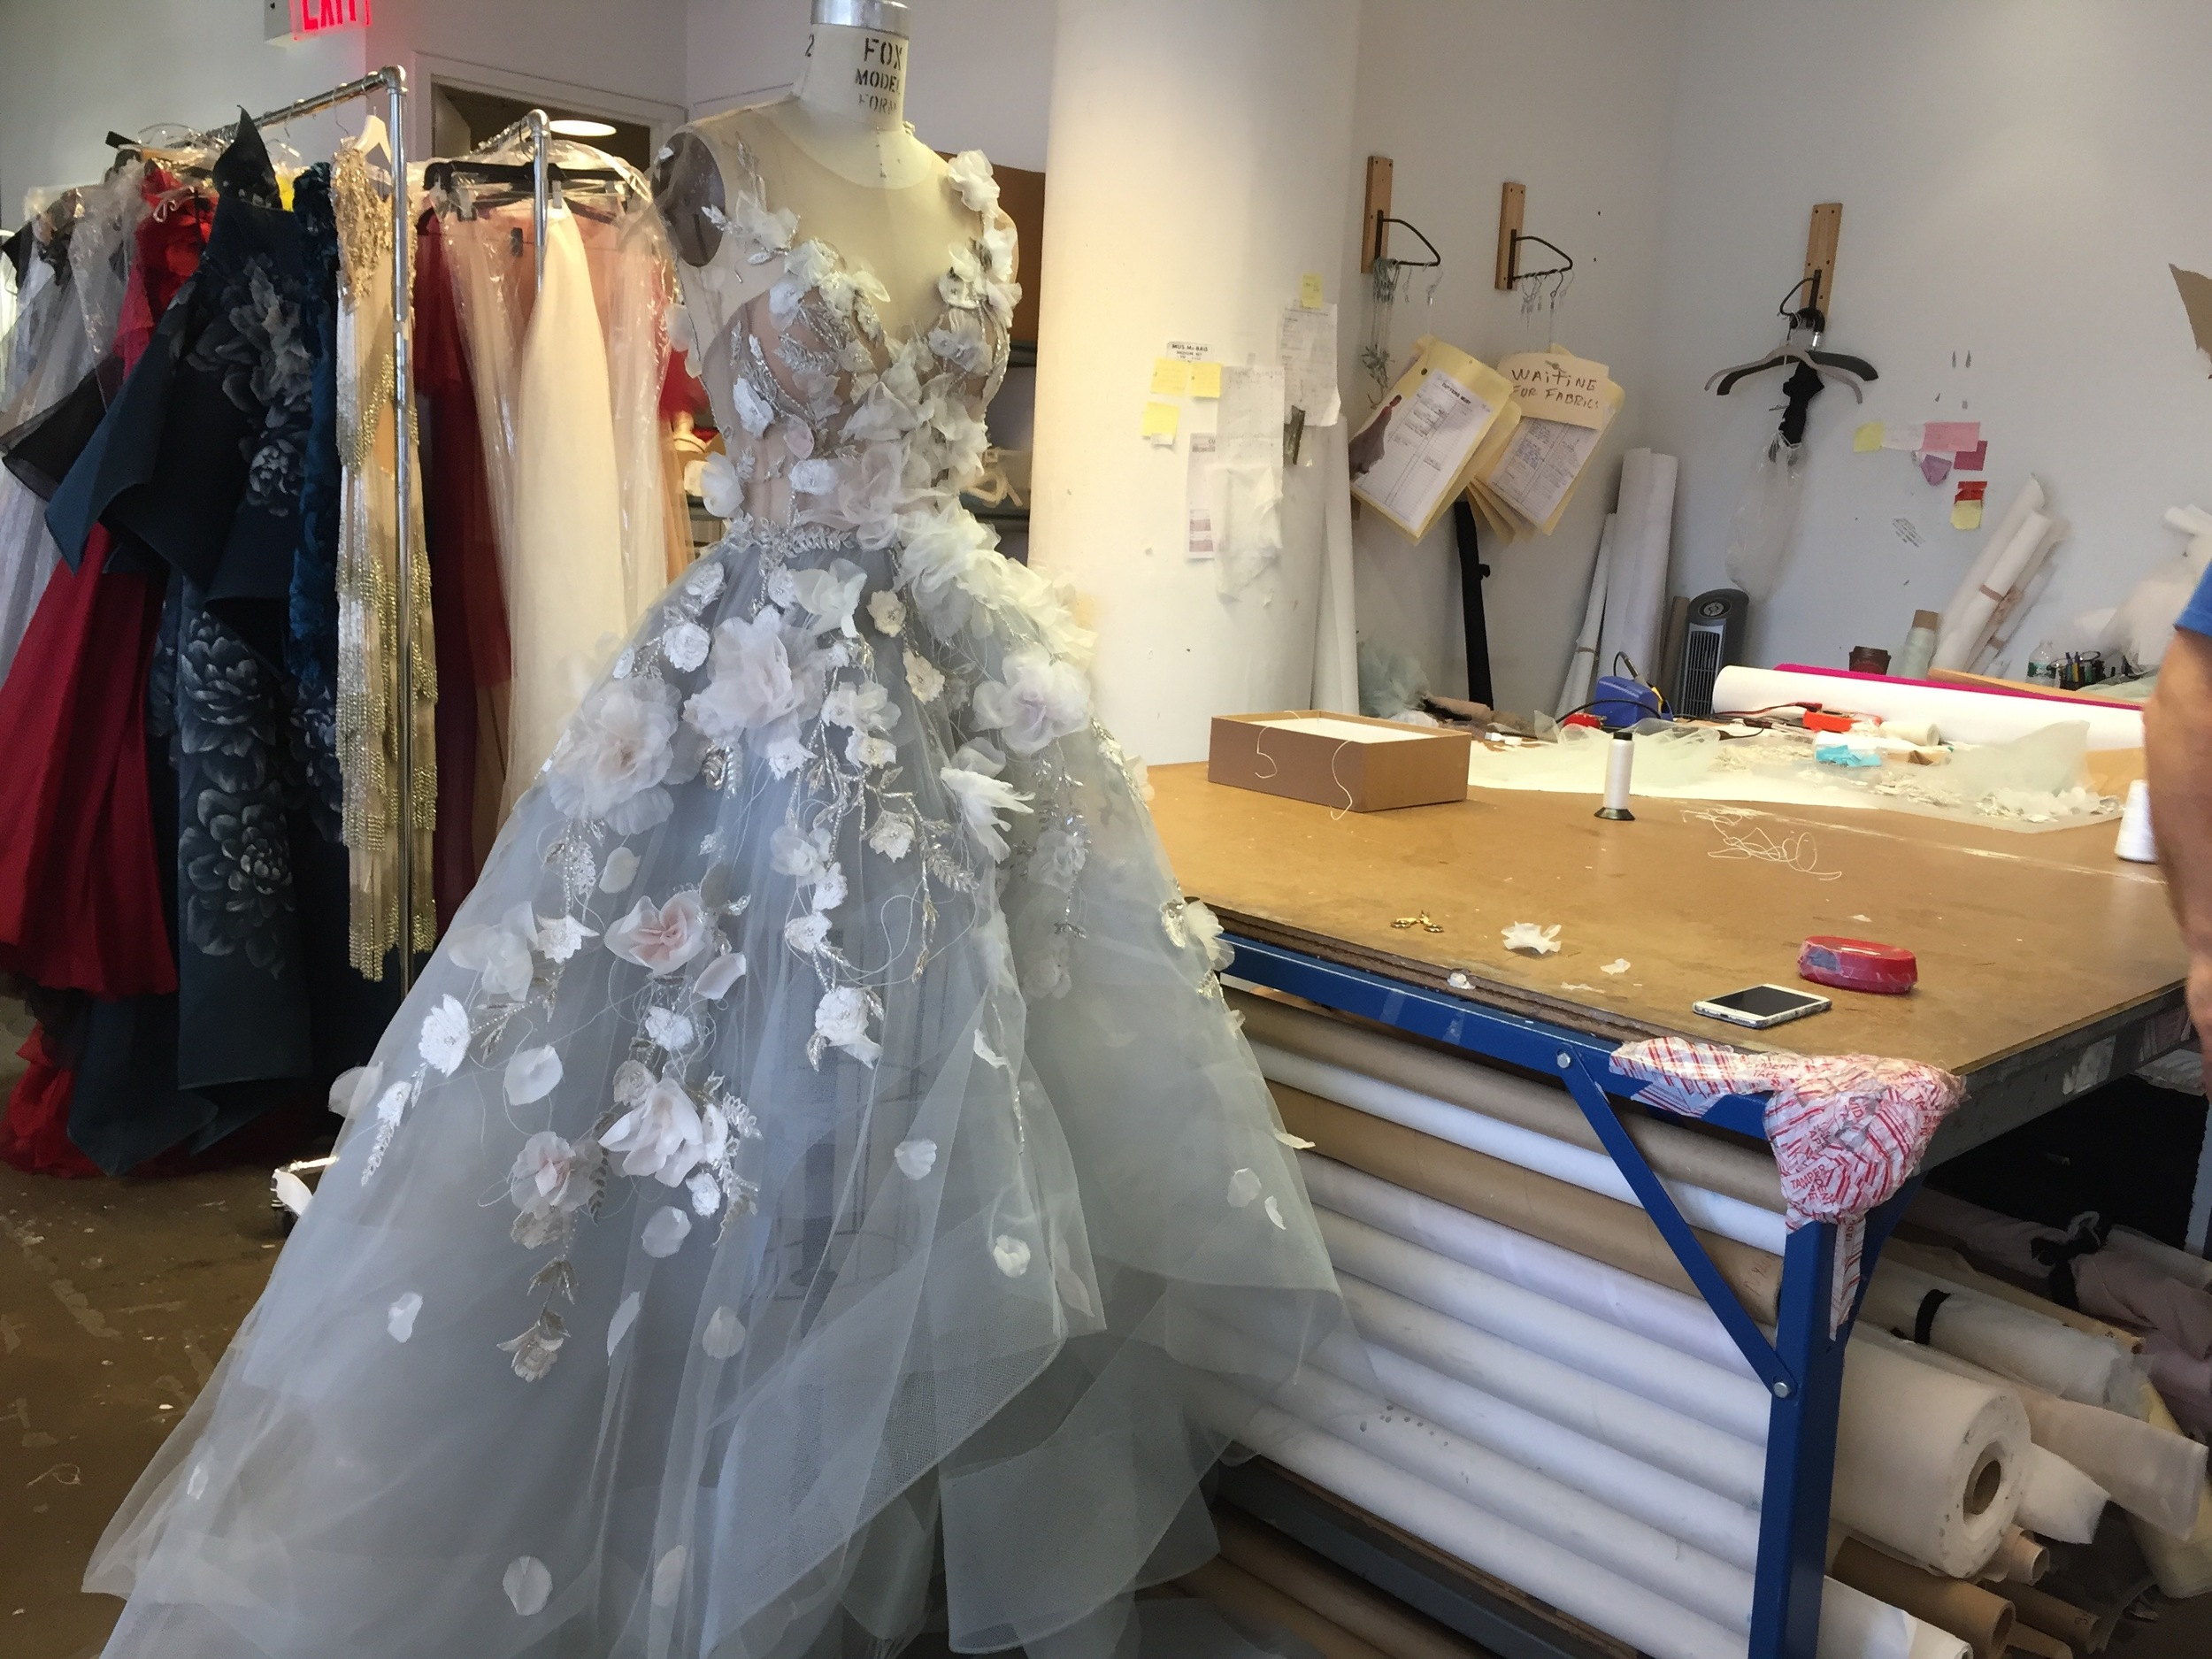 Here's the dress coming together at the Marchesa studio on the night before the gala